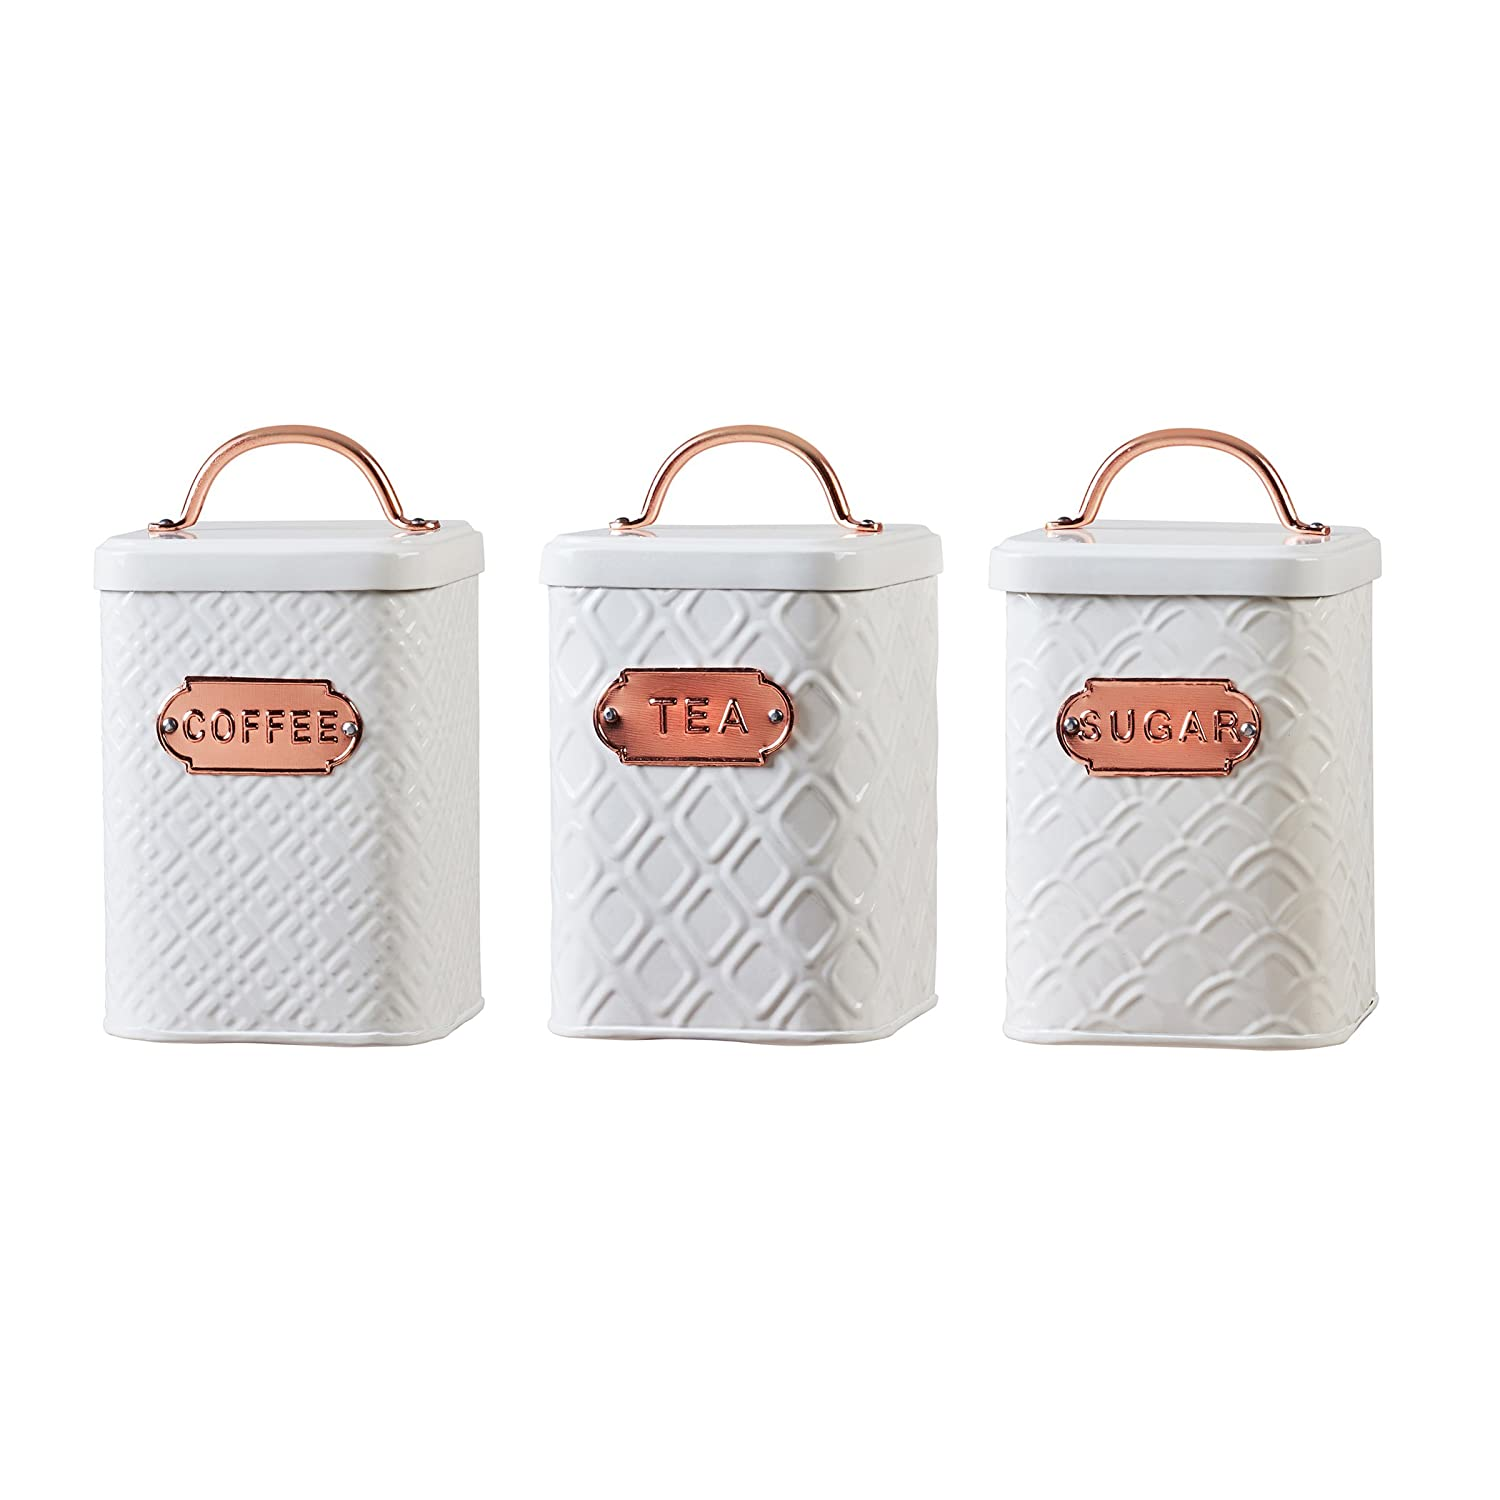 Amici Home, A5IP007AS3R, Ventana Collection Metal Storage Canisters, Food Safe, Copper Handle and Relief Label, Push Top Lid, Assorted Set of 3, 60 Ounces Global Amici